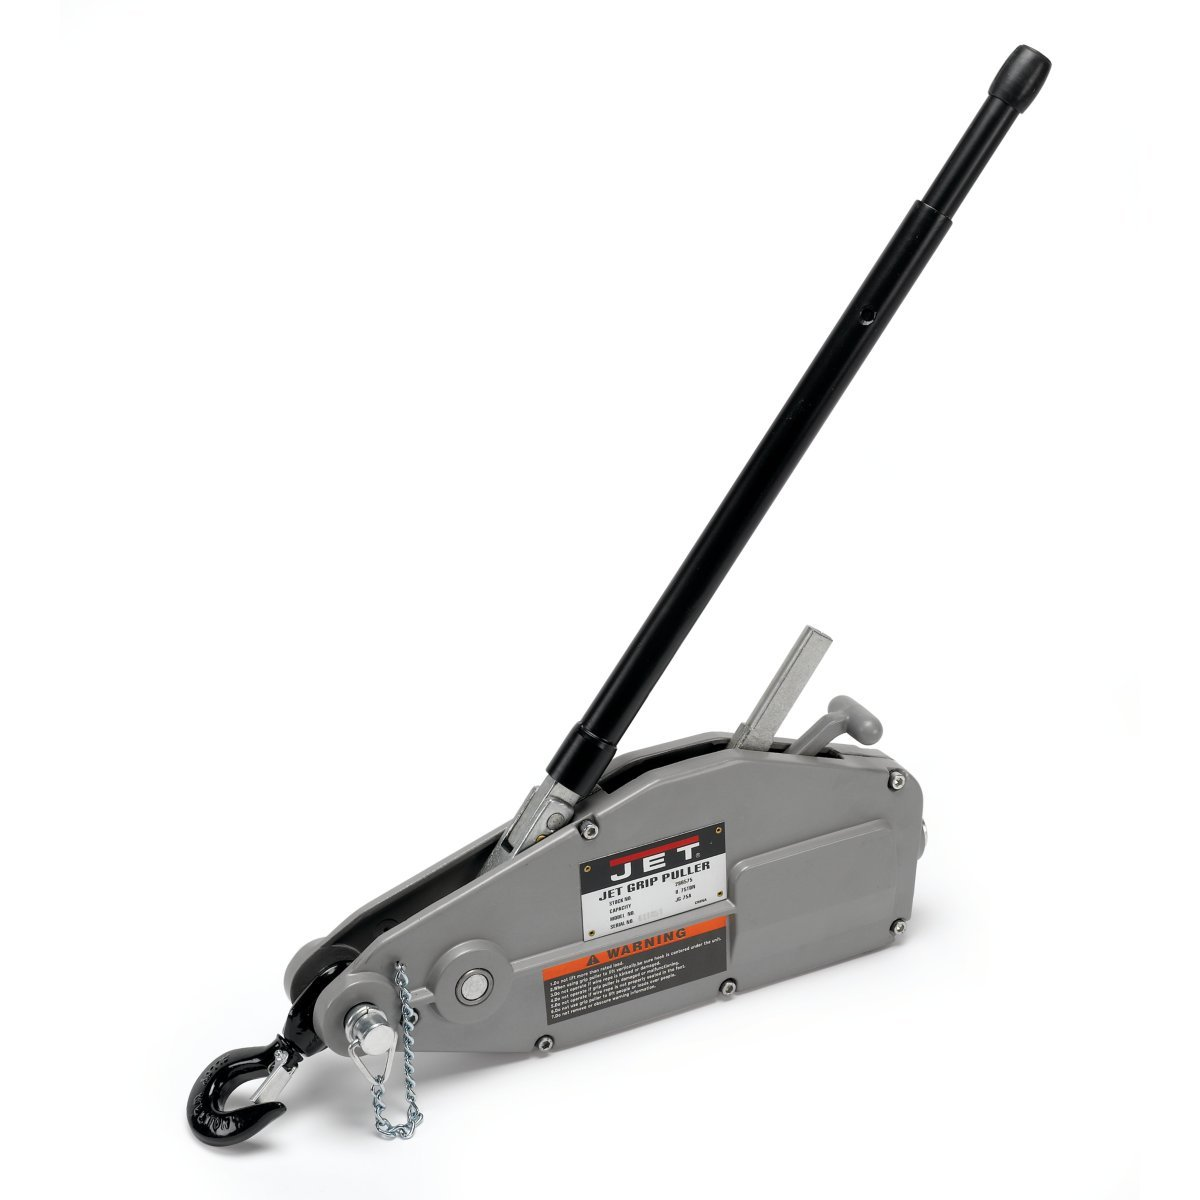 JET 286530K 3-Ton Wire Rope Grip Puller with Cable - Pulleys ...